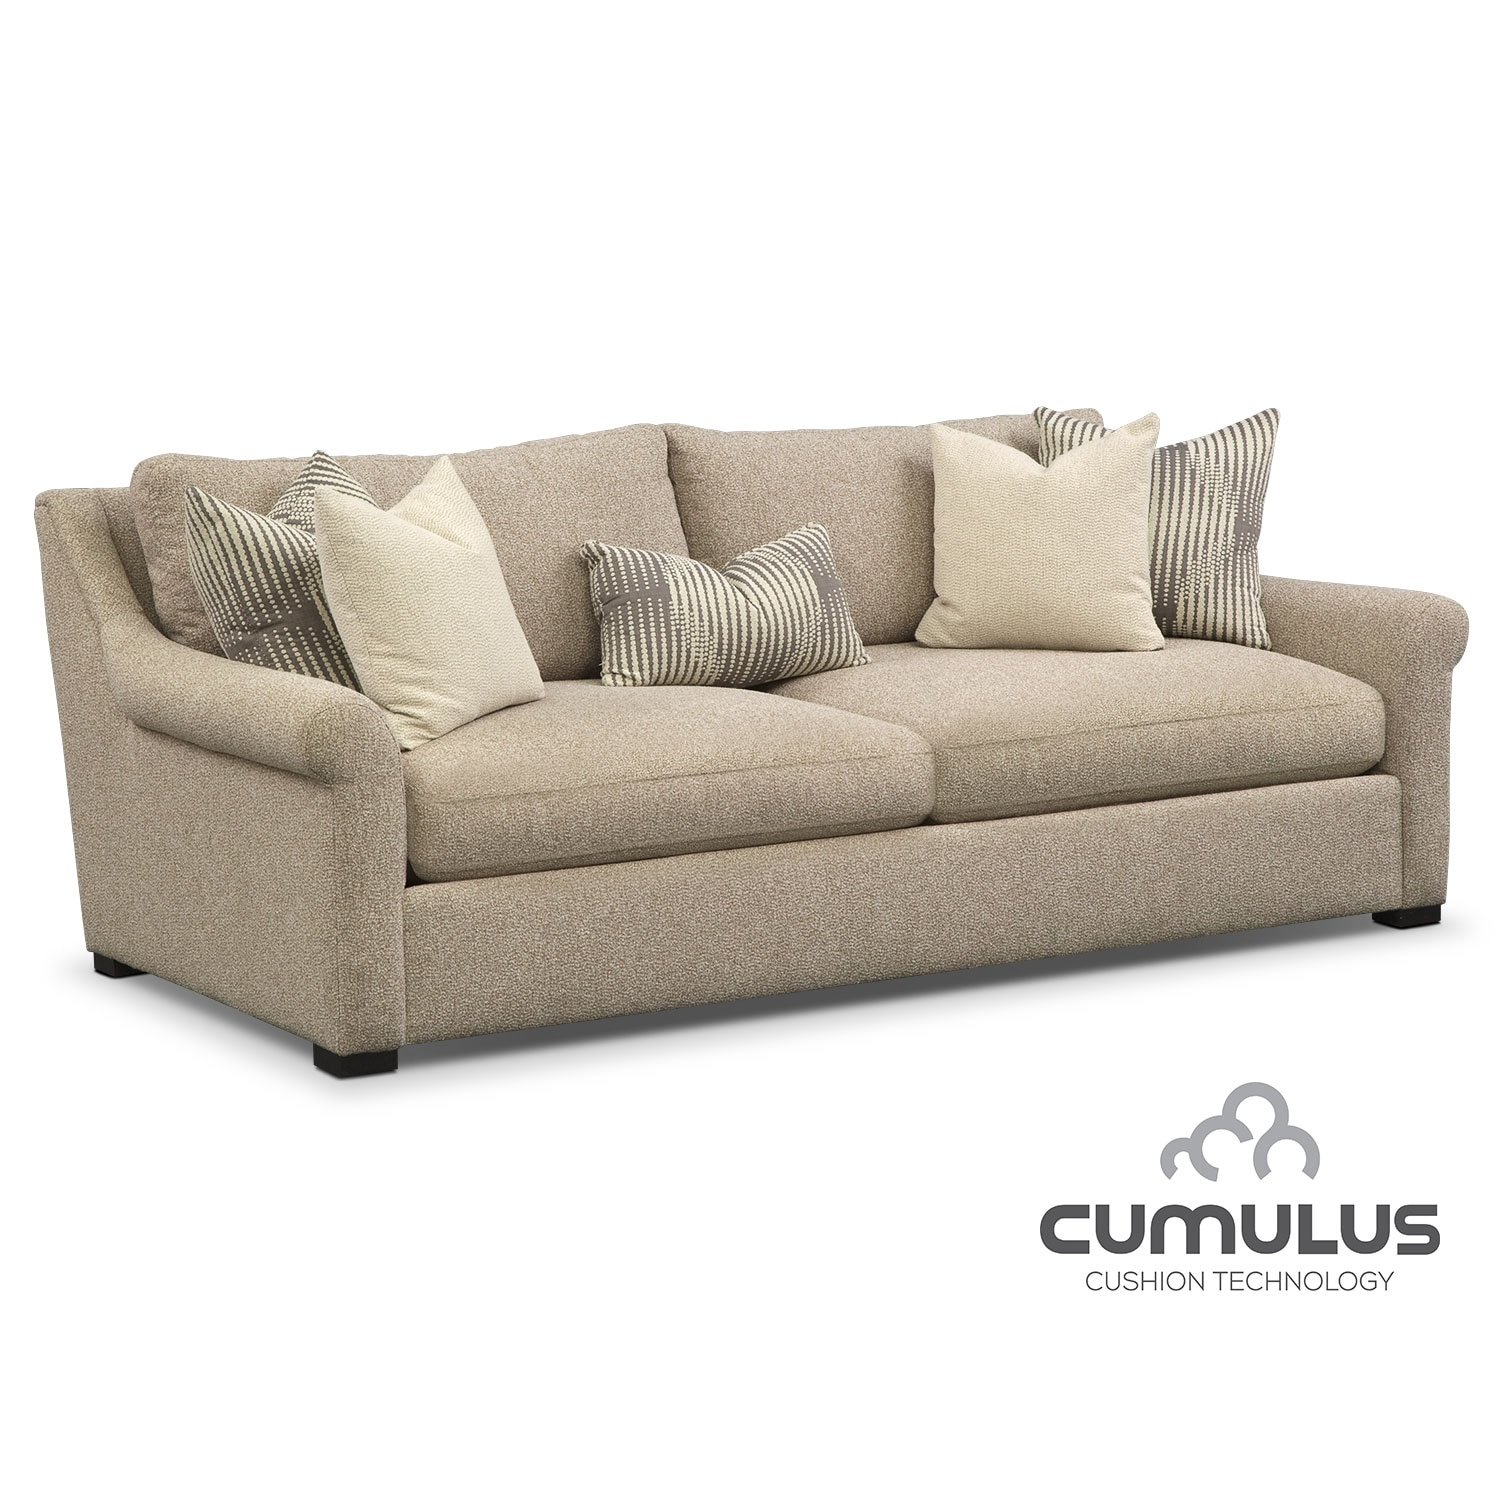 Living Room Furniture - Robertson Cumulus Sofa - Beige